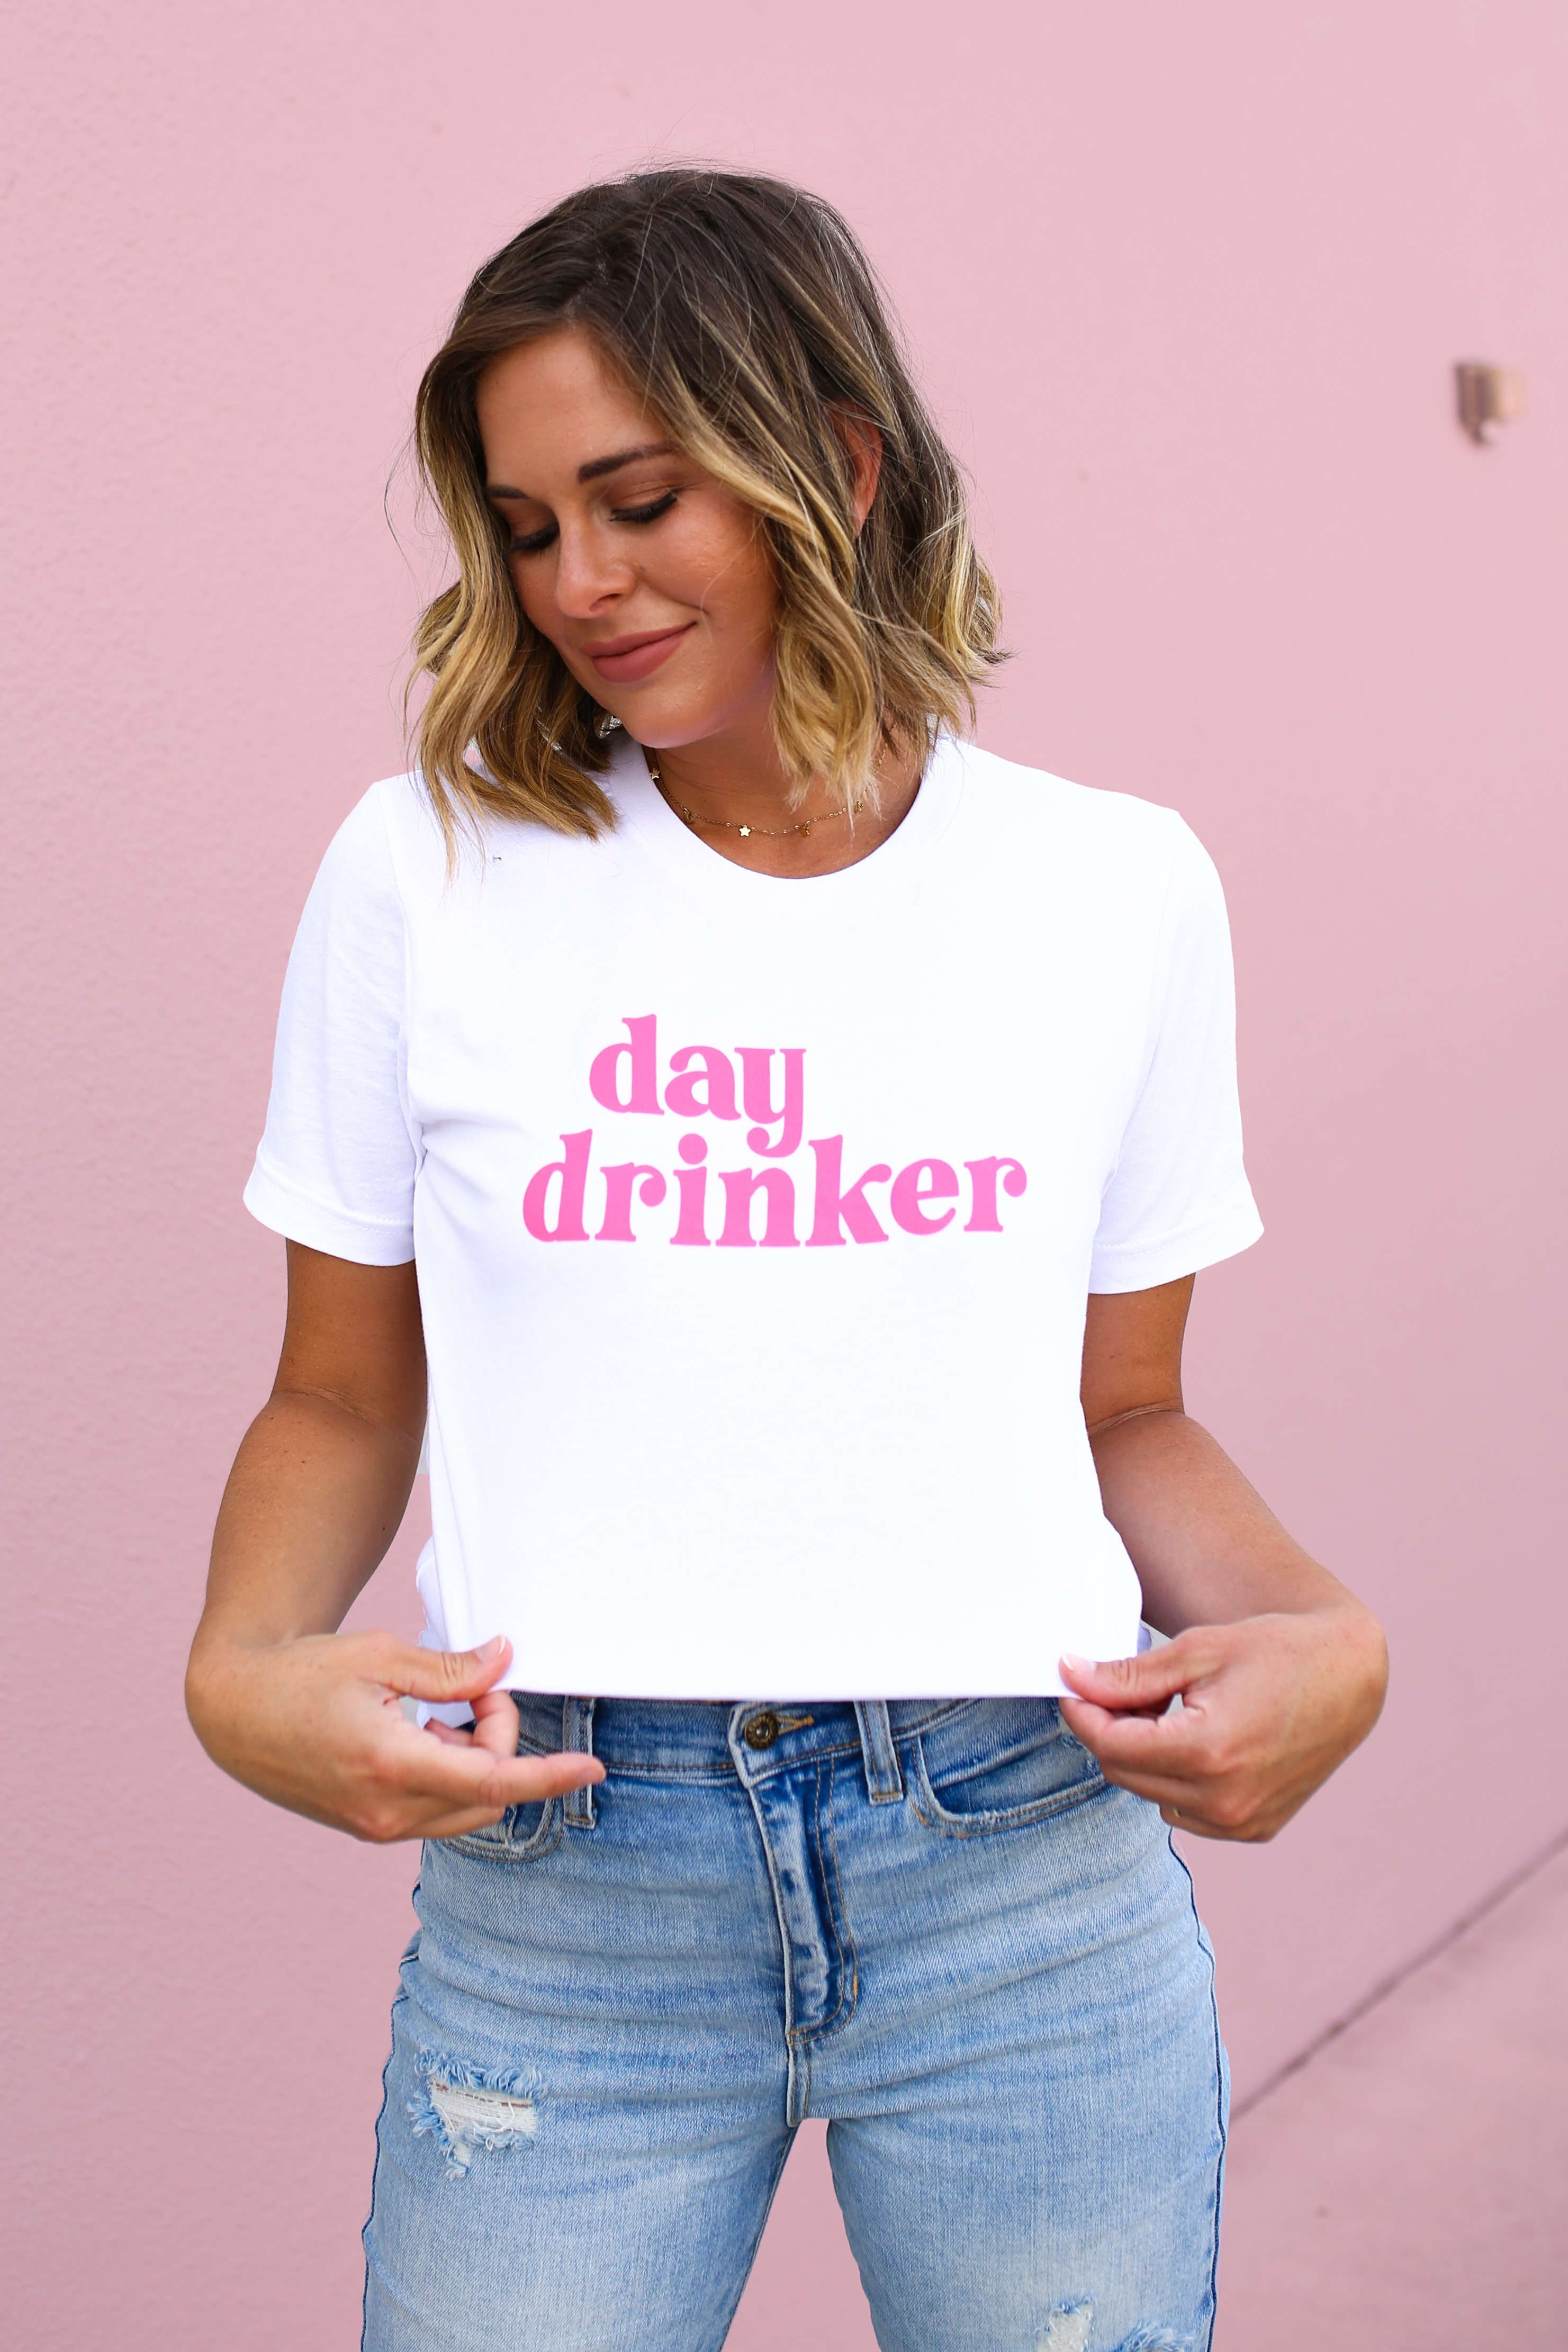 """MAVERICK EXCLUSIVE! WHITE UNISEX TEE. NEON PINK """"DAY DRINKER"""" GRAPHIC. 100% COTTON. GABBY IS 5'8"""" A SIZE 12 AND 38DD WEARING A LARGE. AMANDA IS 5'7"""" A SIZE 2, WEARING A SMALL. S 0-4 M 4-8 L 8-12 XL 12-16 XXL 16-18"""